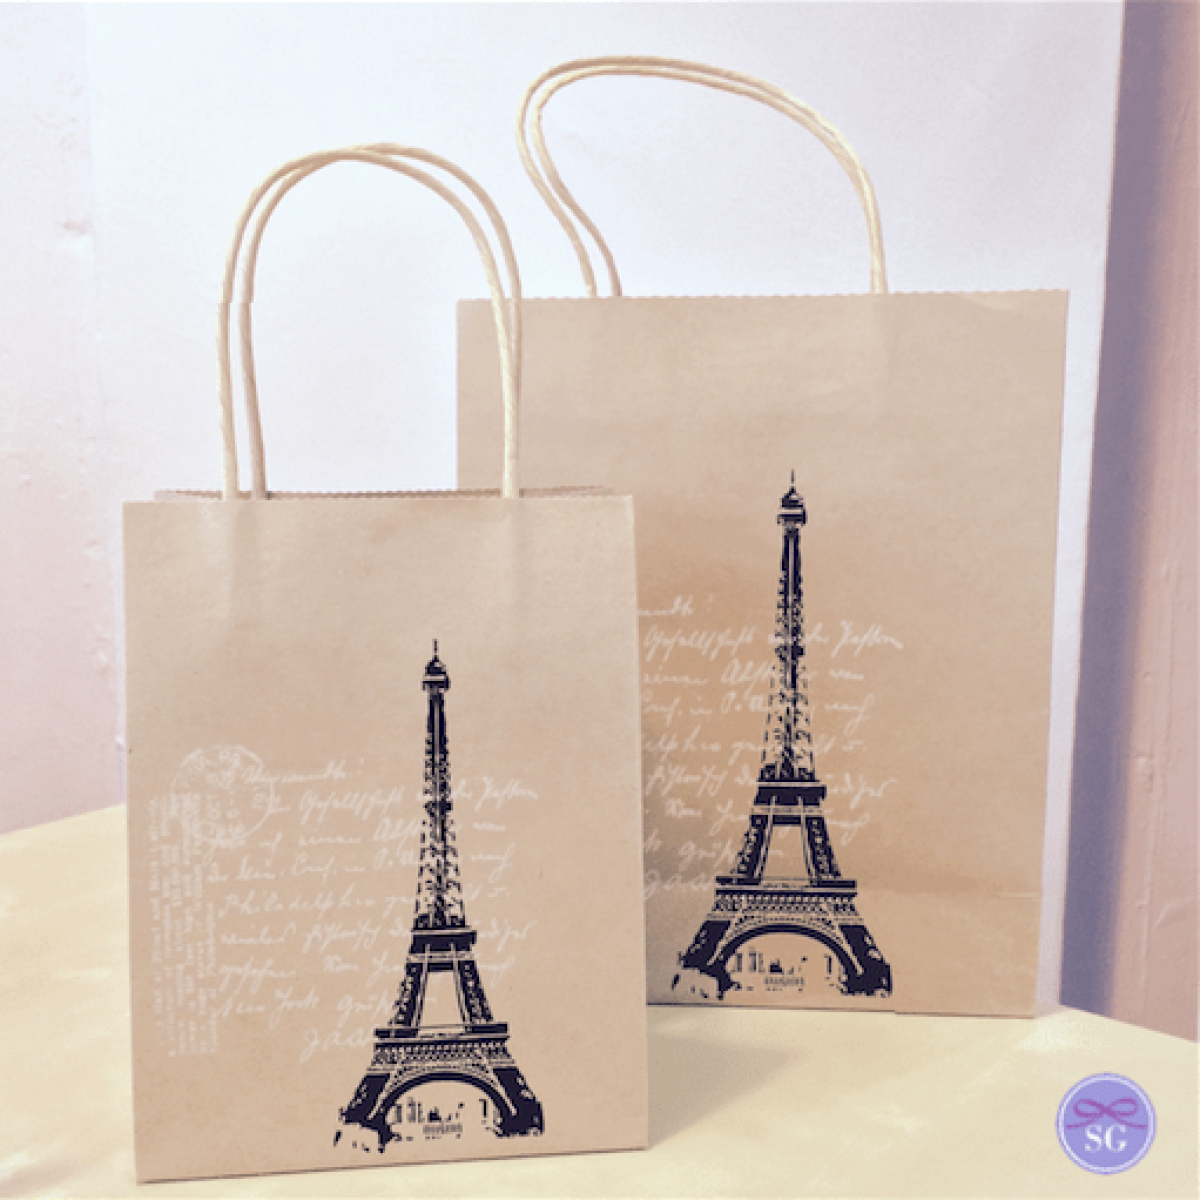 Baby Shower Venues In Singapore: Paris Themed Gift Bags